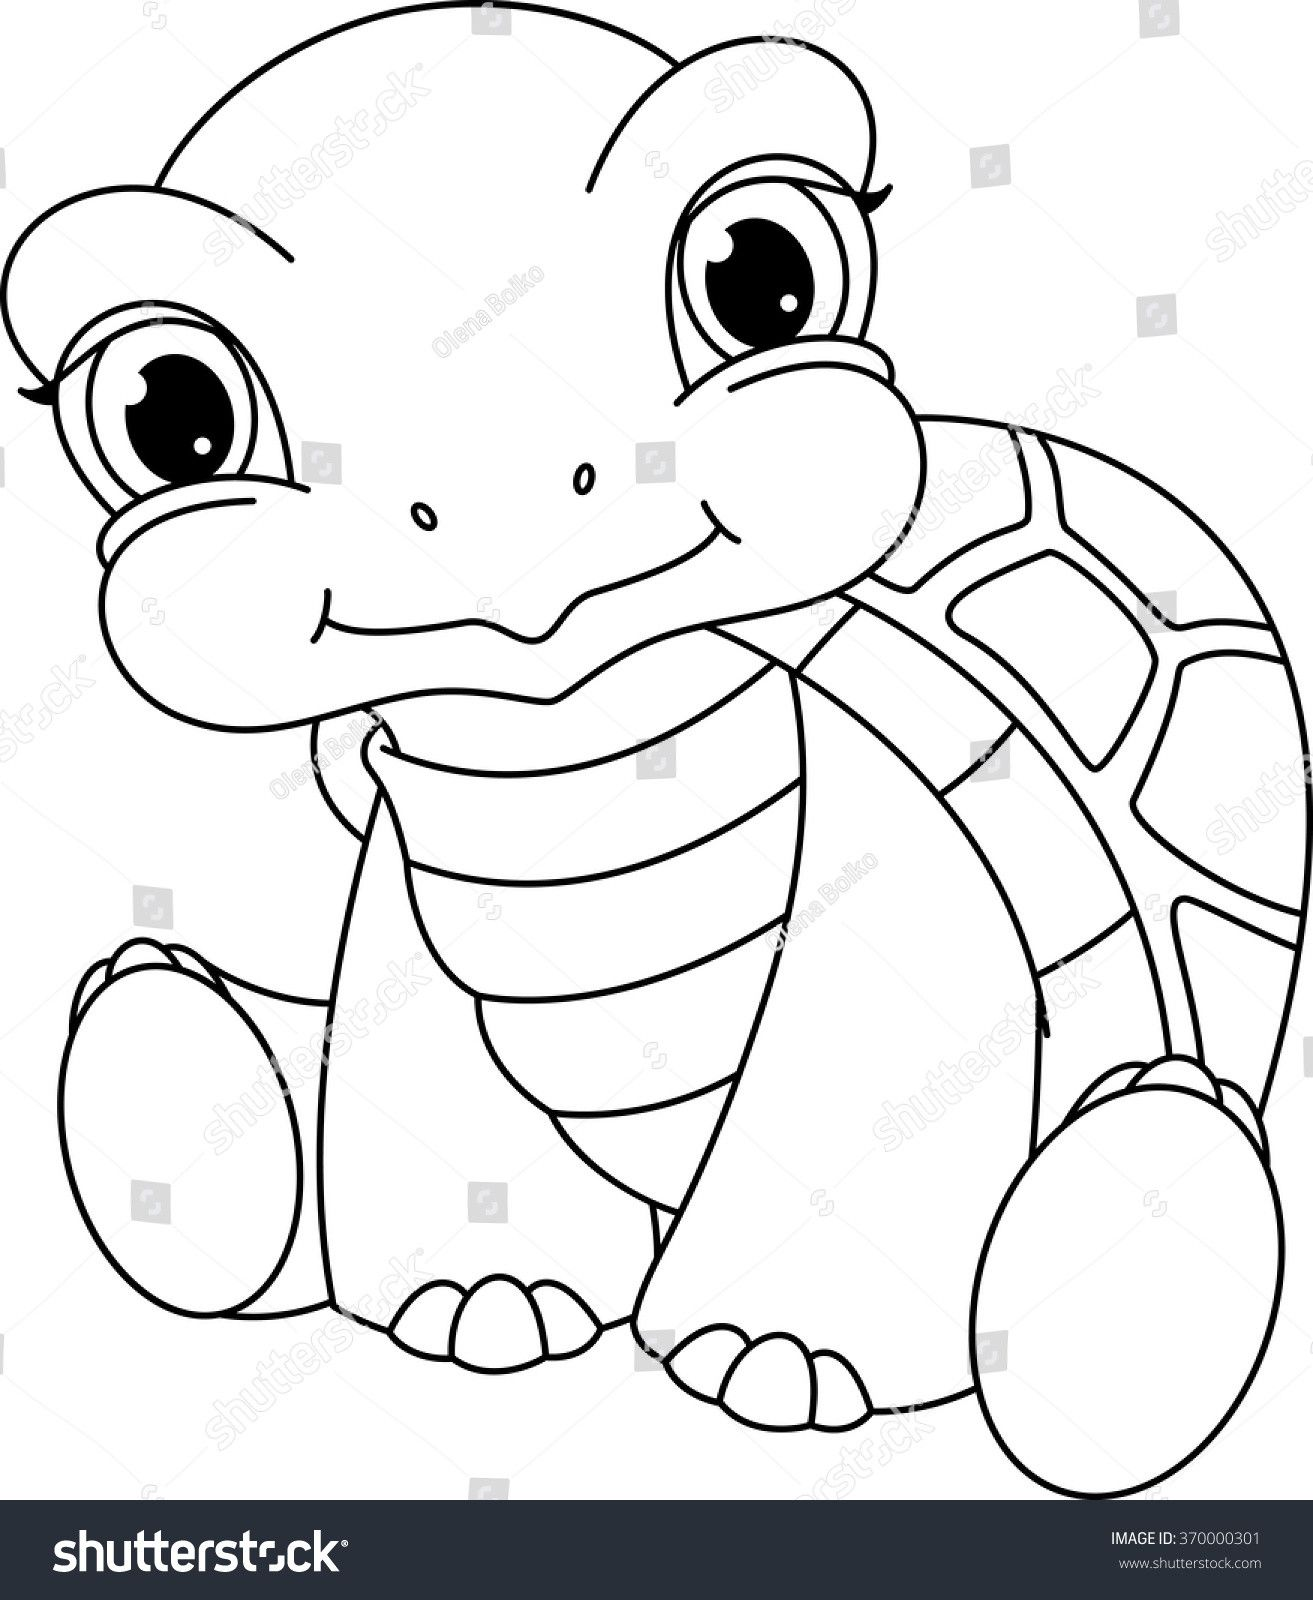 Baby Turtle Coloring Page Youngandtae Com Baby Coloring Pages Turtle Coloring Pages Turtle Drawing